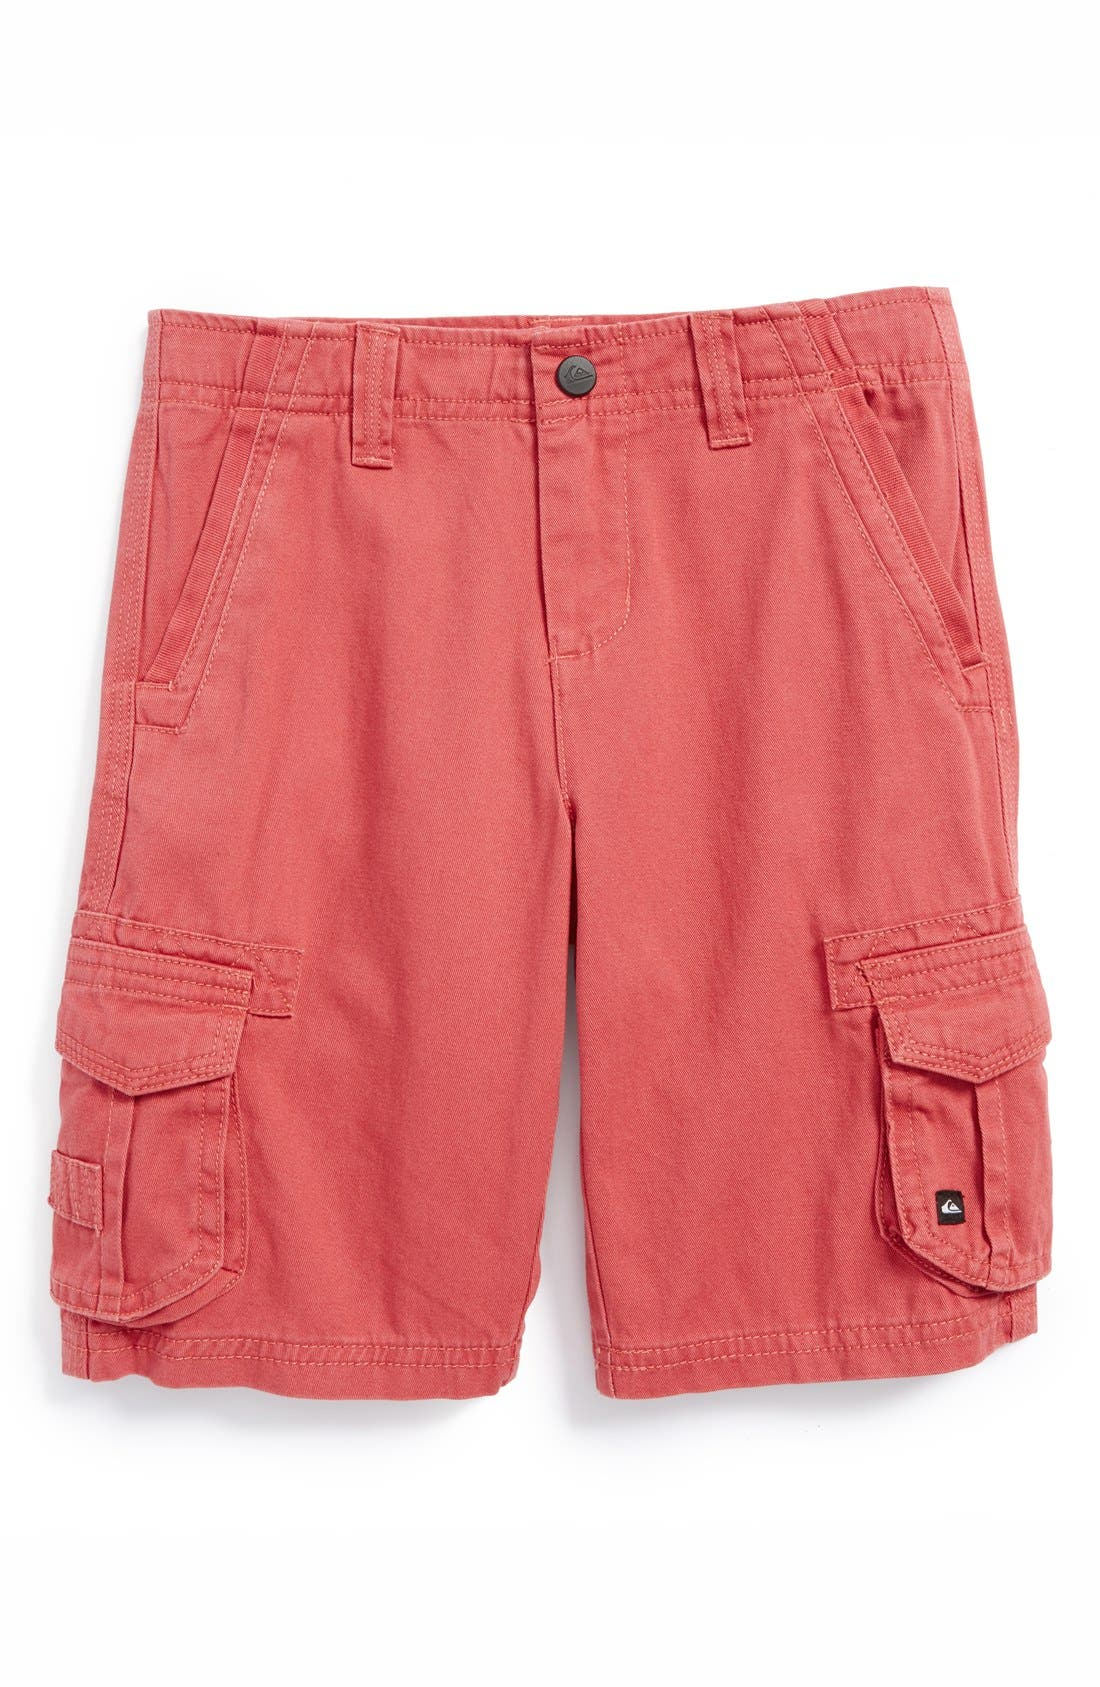 Alternate Image 1 Selected - Quiksilver 'Deluxe' Cotton Twill Cargo Shorts (Little Boys)